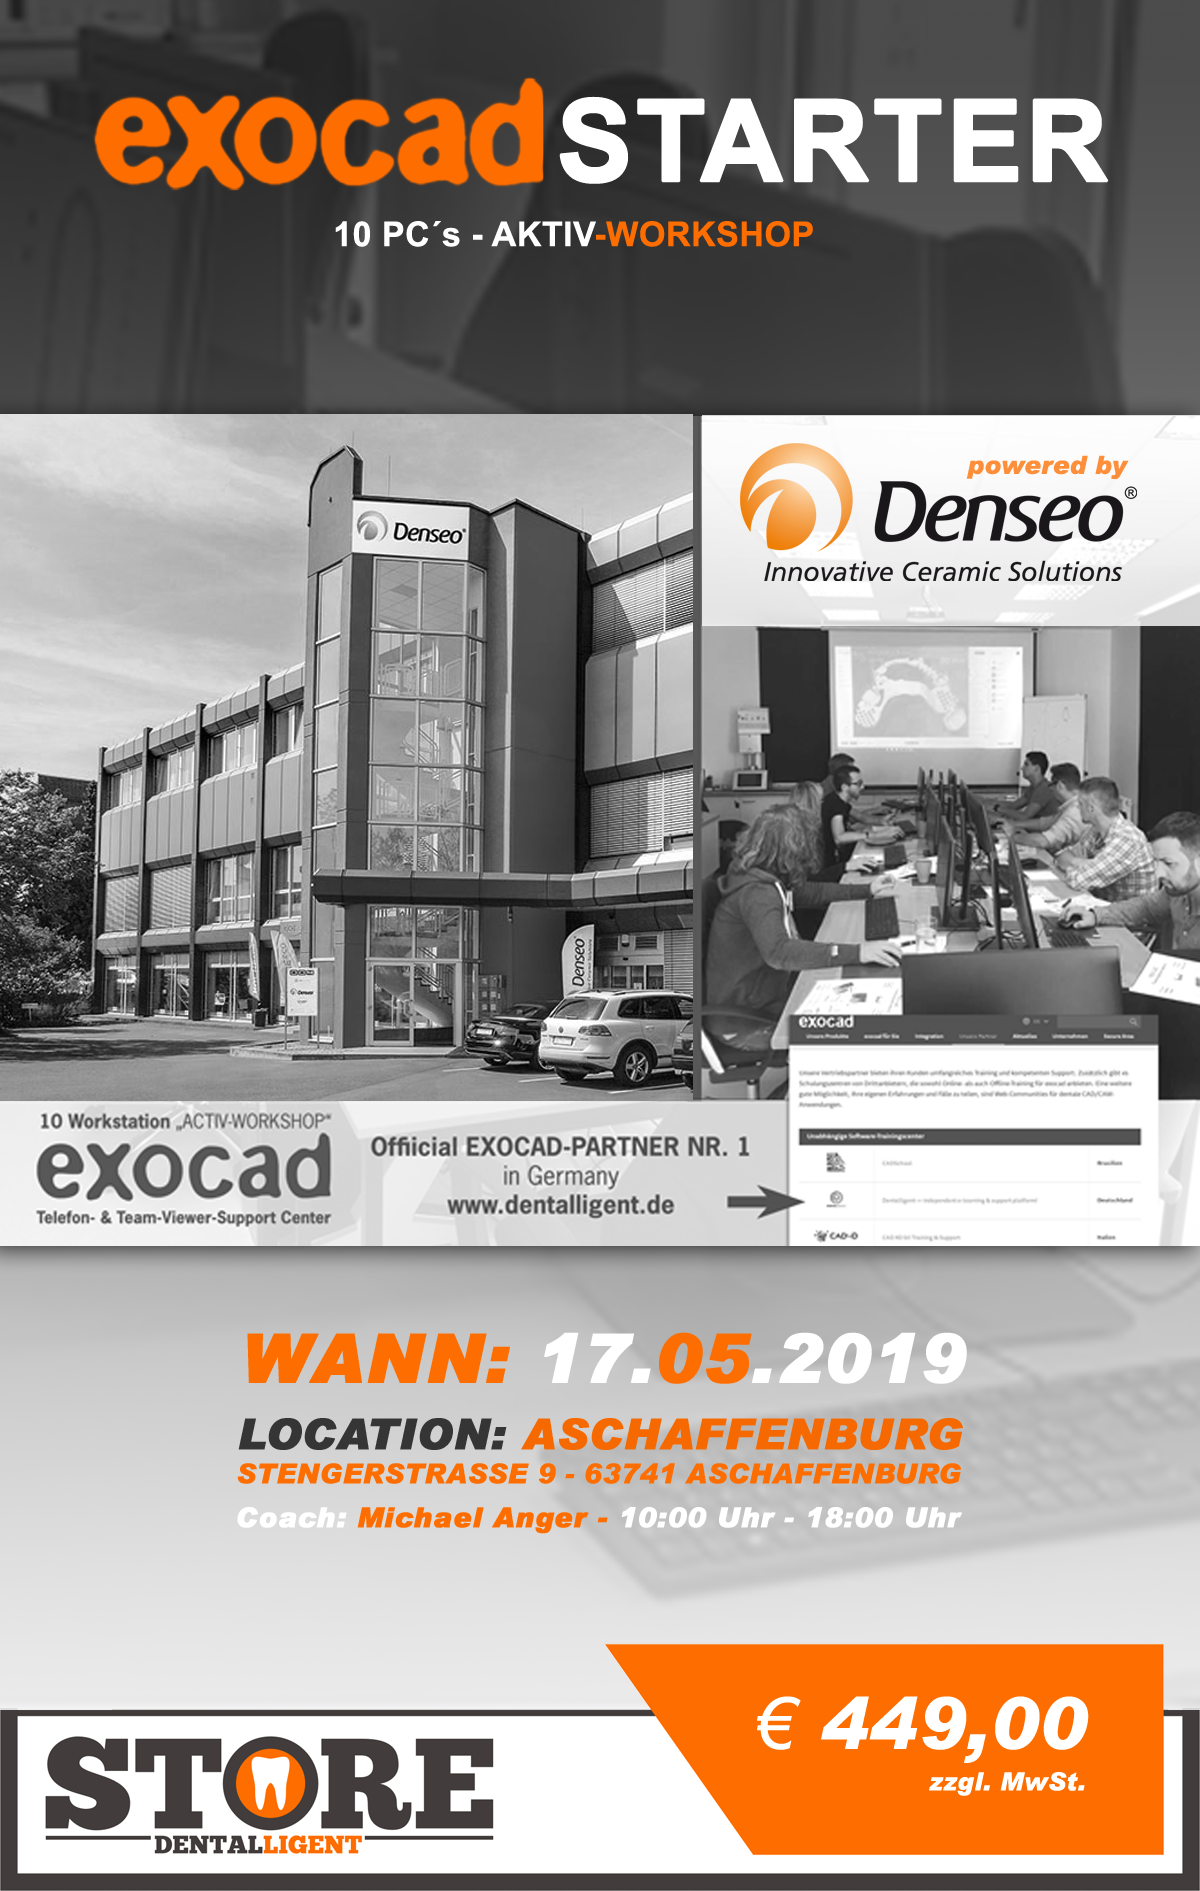 "EXOCAD - STARTER - ""AKTIV WORKSHOP"" mit 10 PC´s -DENSEO GmbH"